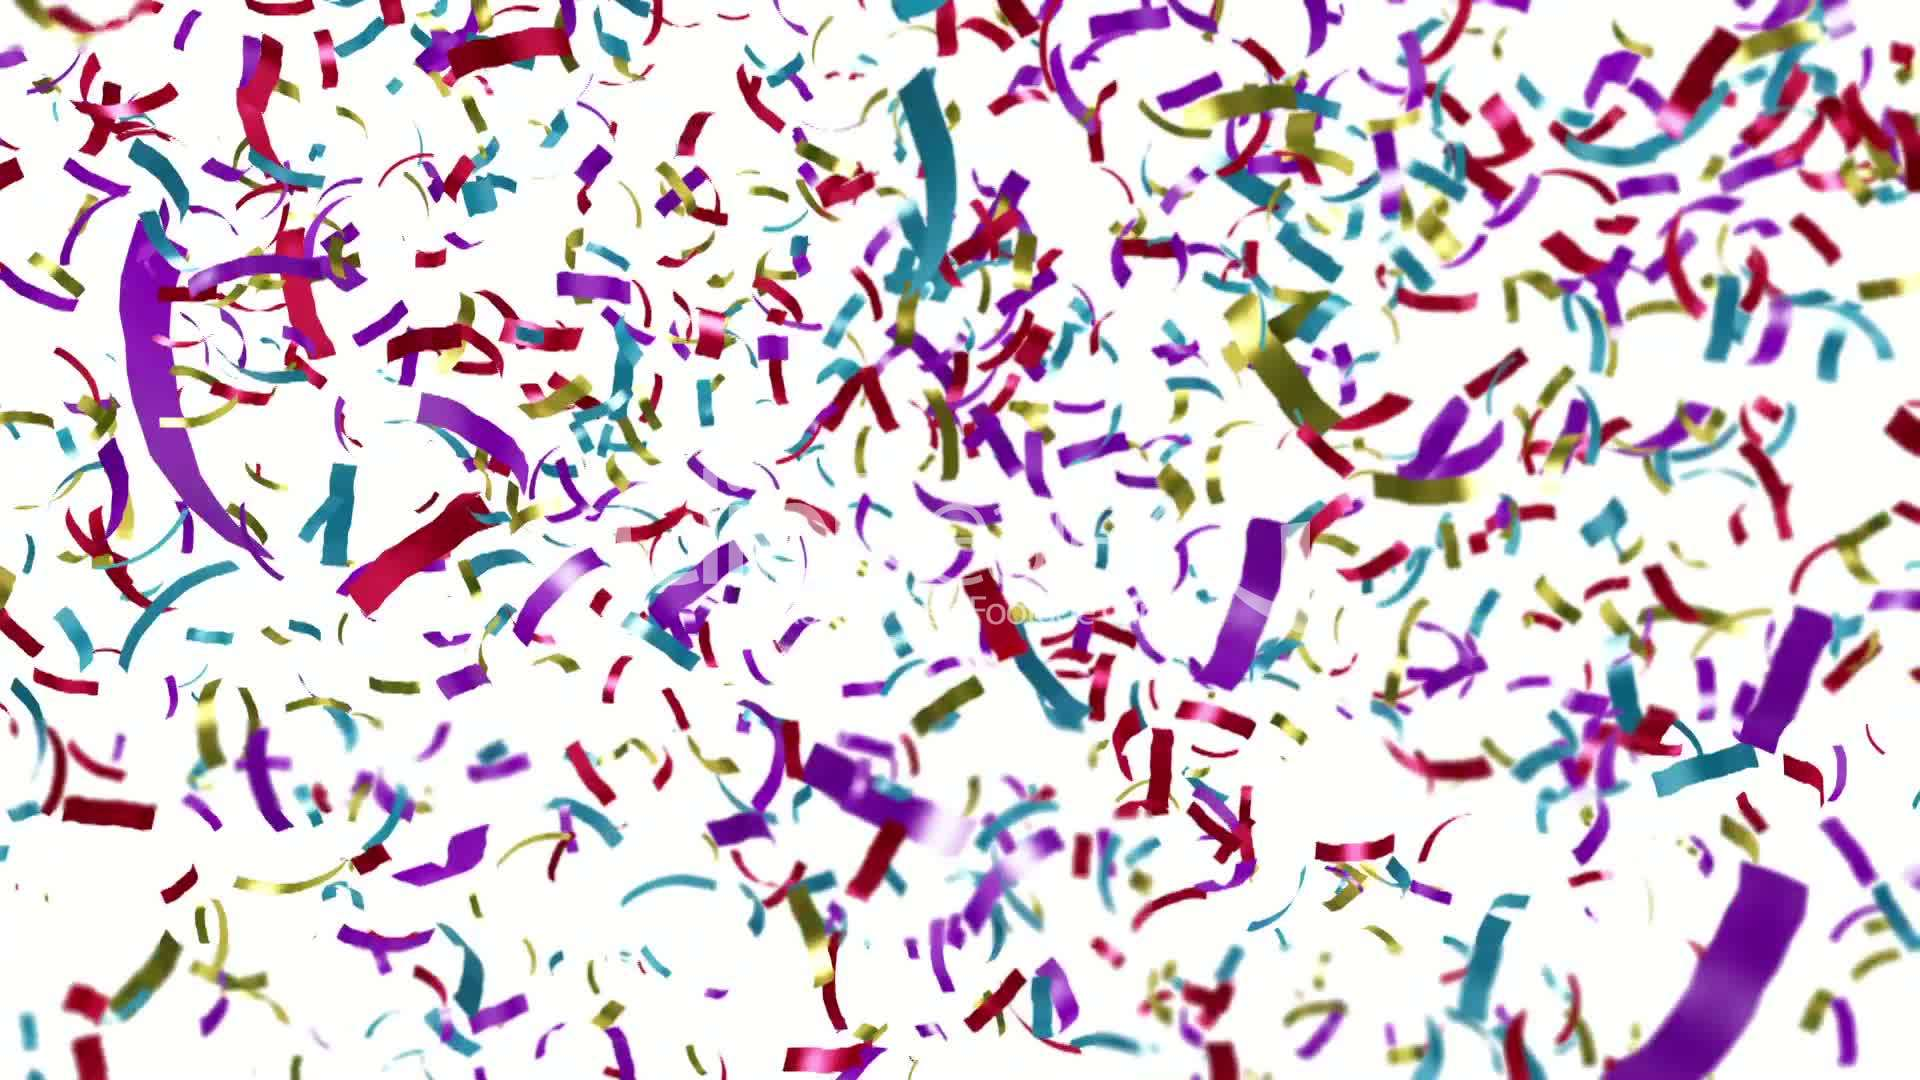 loopable clip of colorful confetti falling  royalty